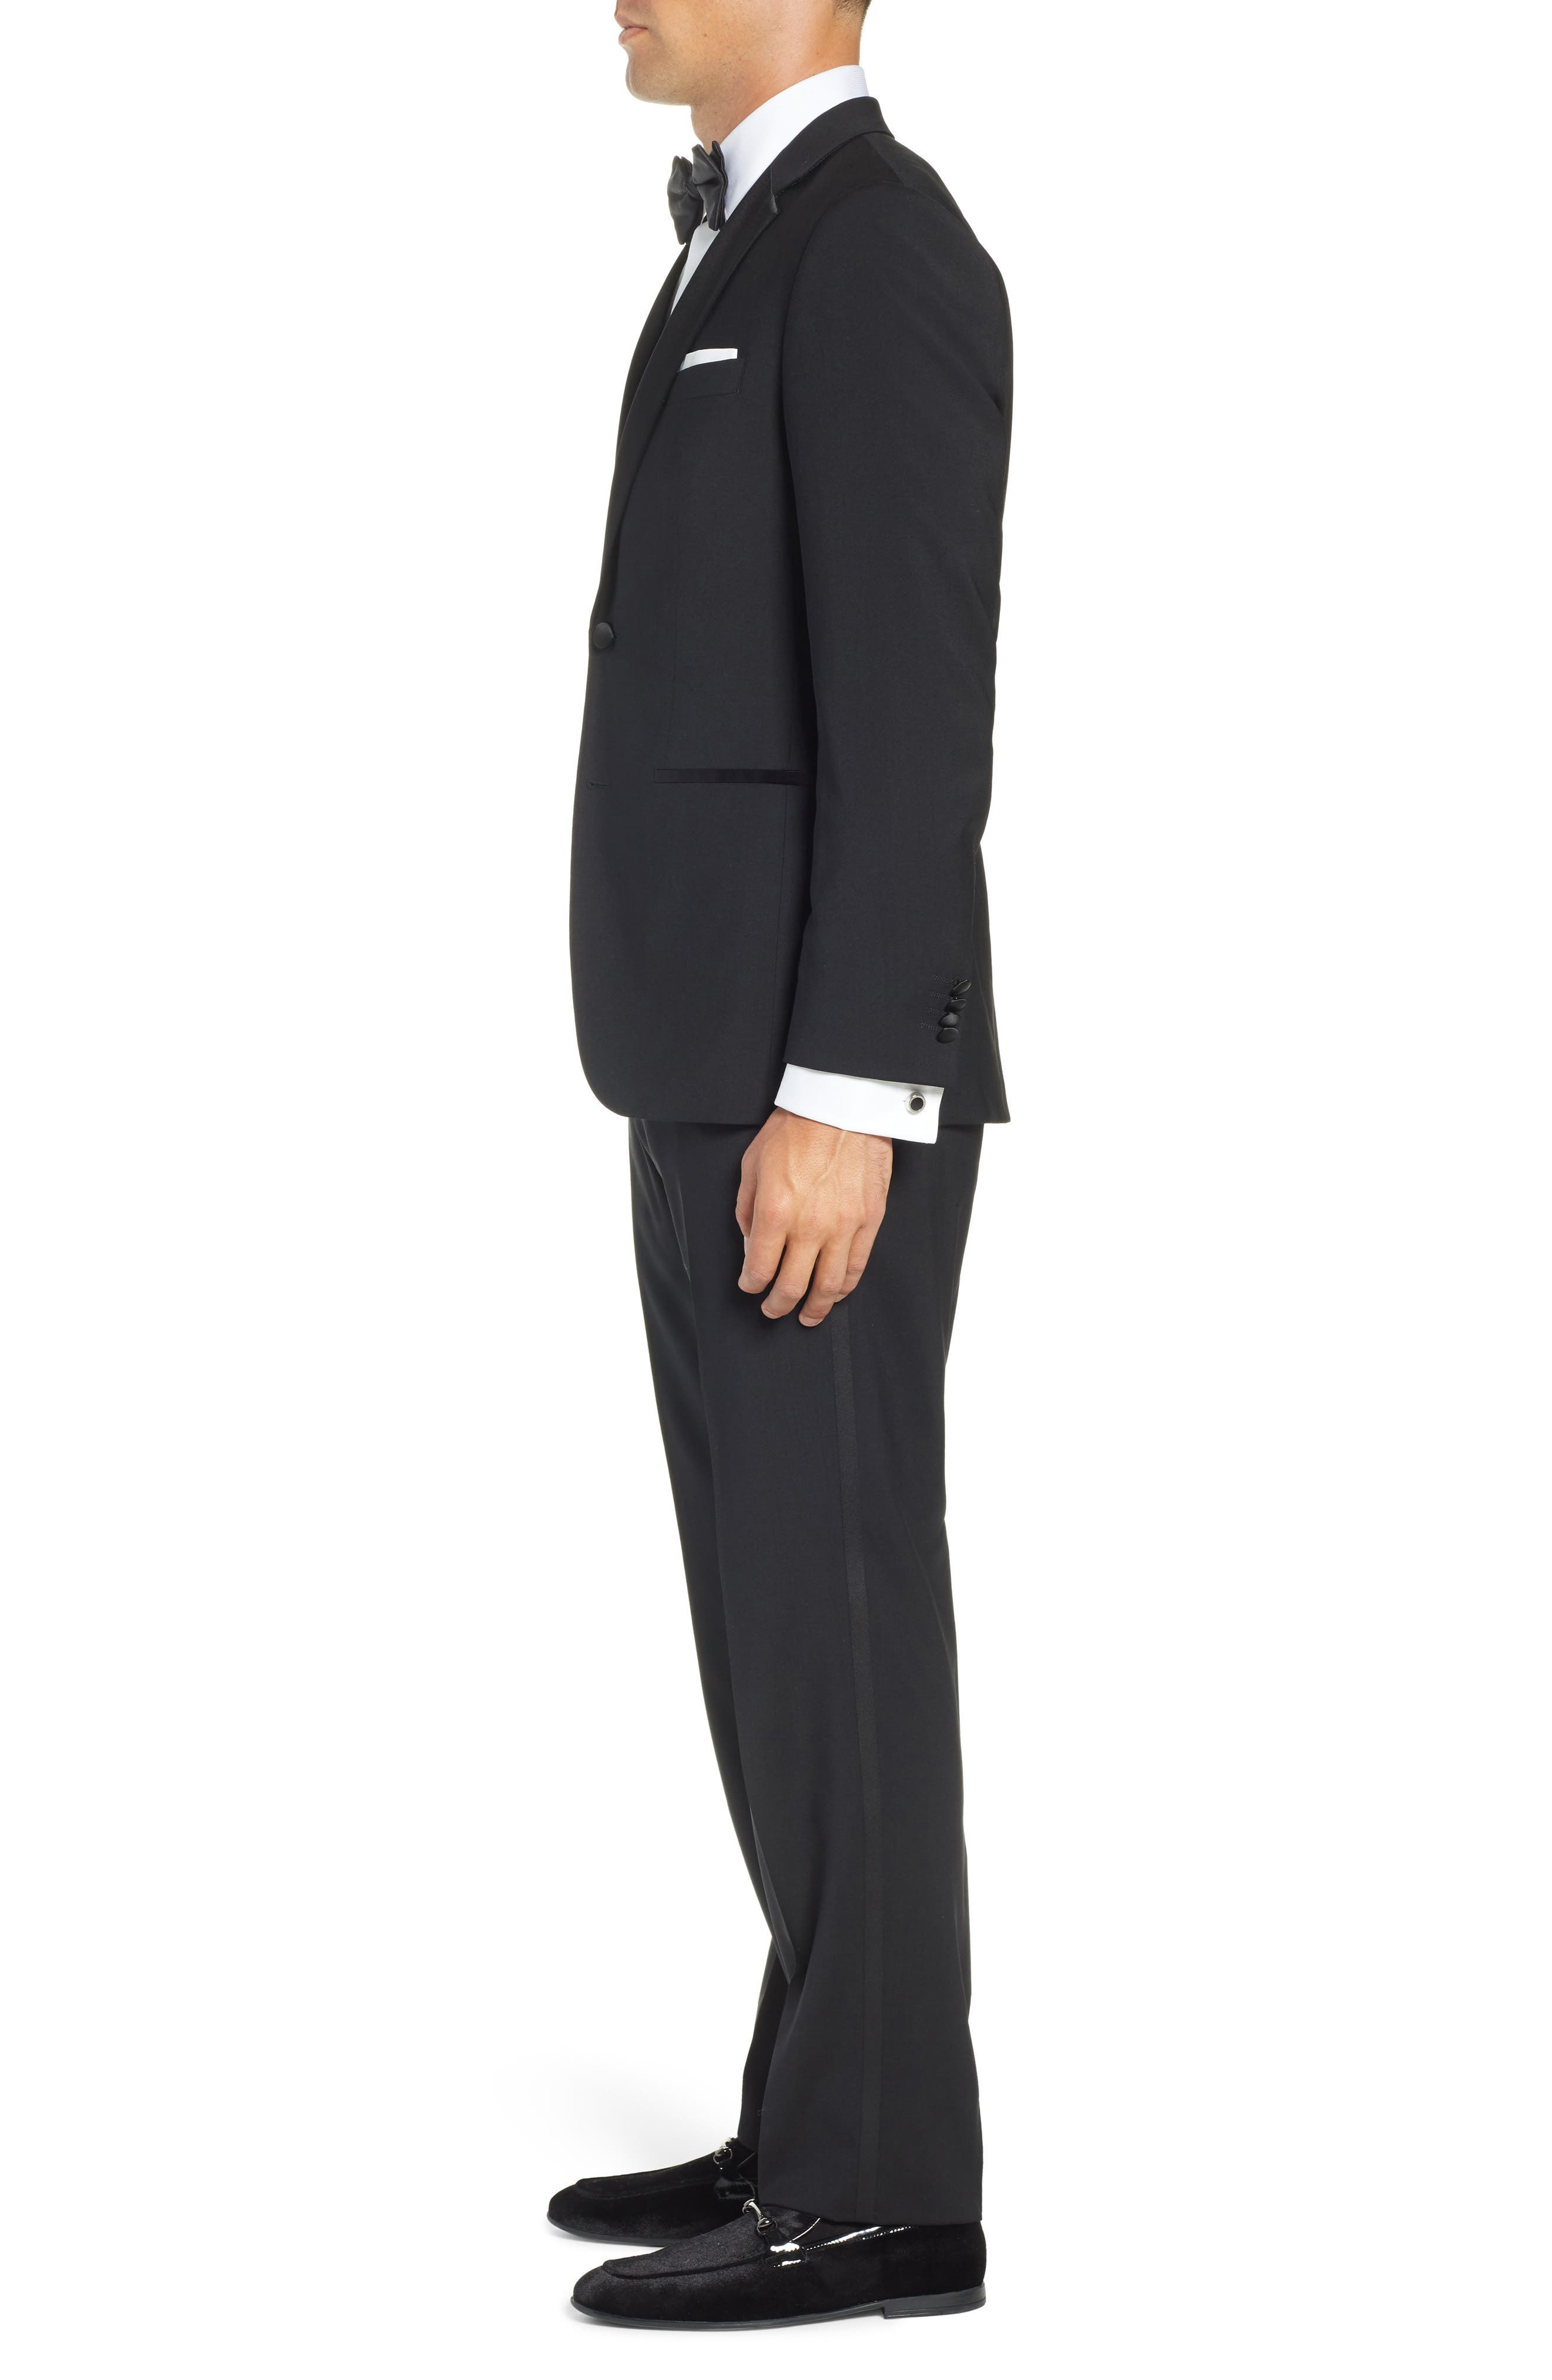 BOSS,                             The Stars/Glamour Trim Fit Wool Tuxedo,                             Alternate thumbnail 3, color,                             001